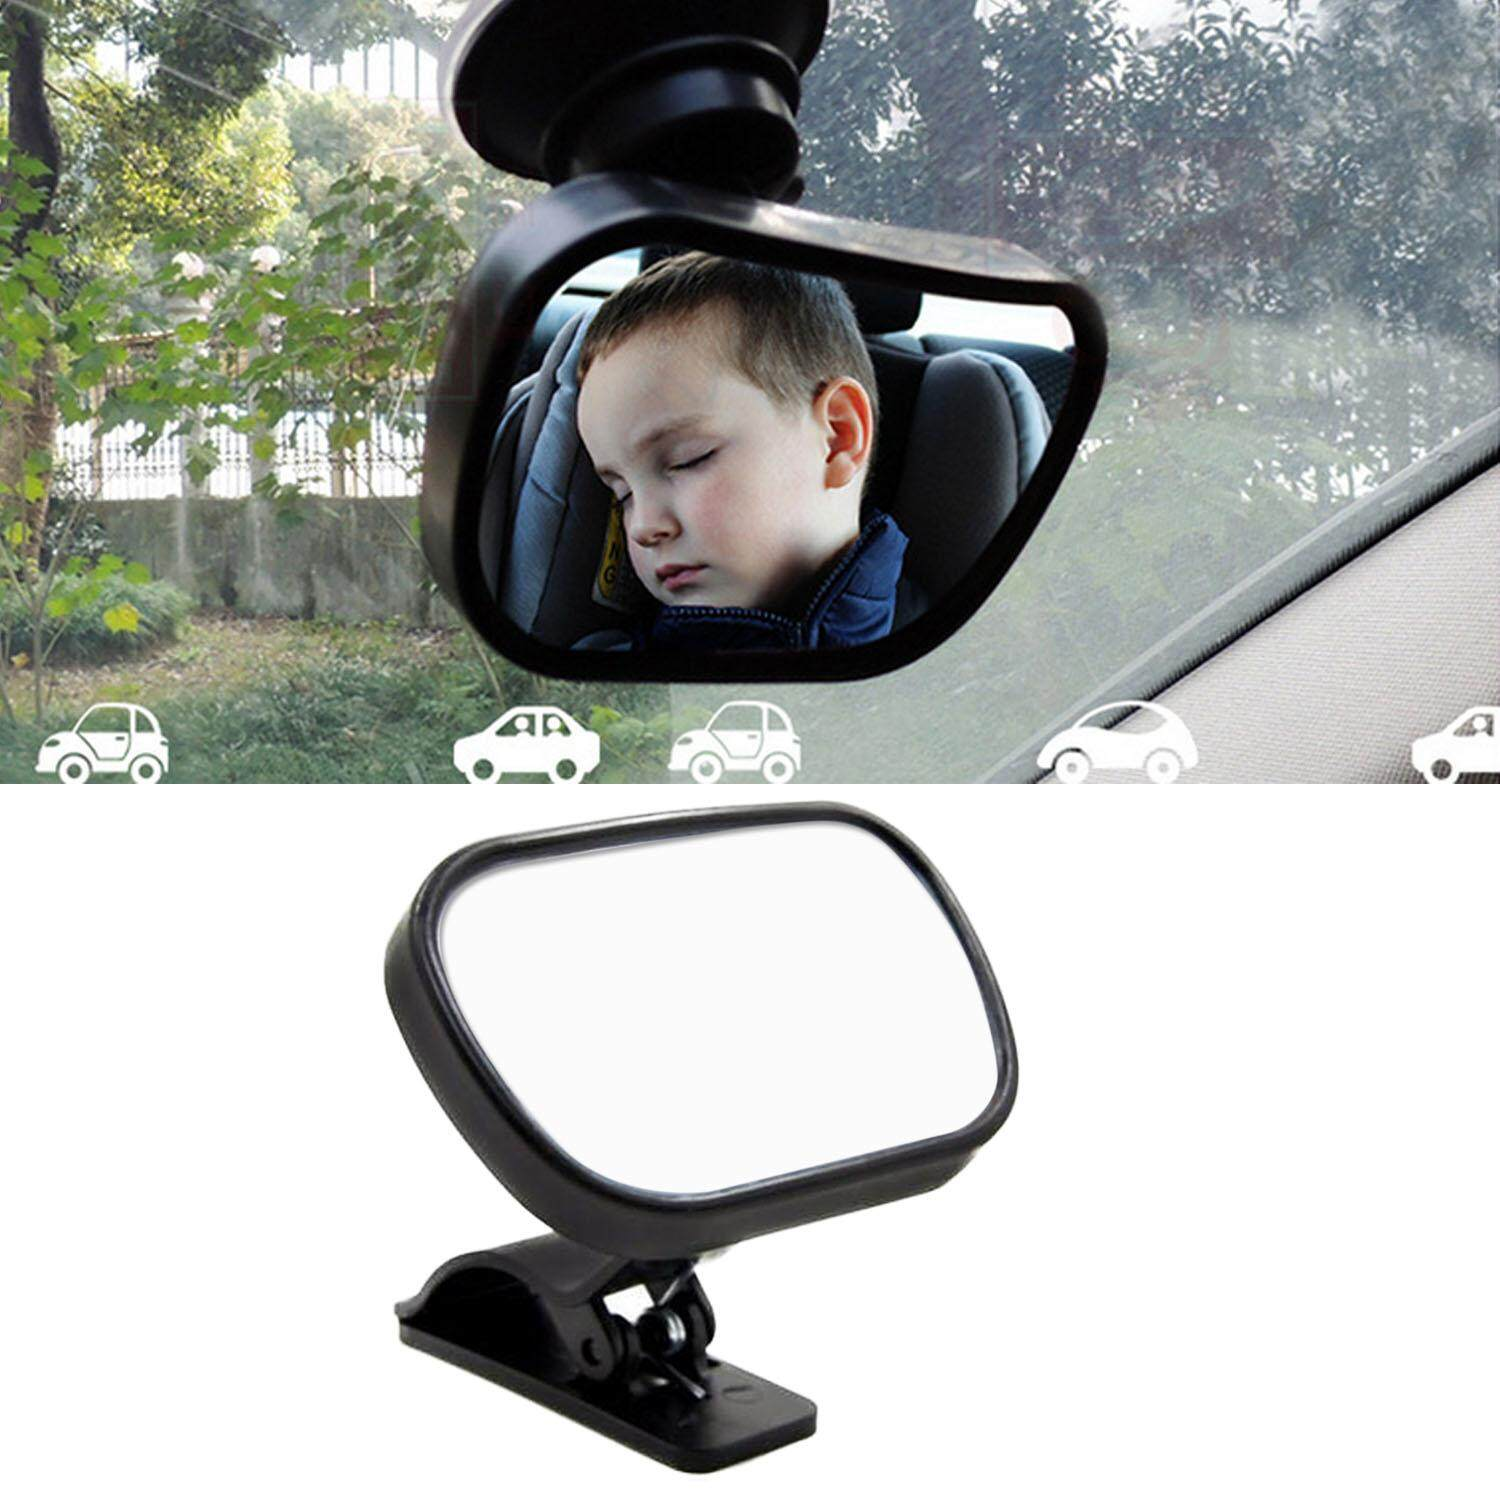 360 Degree Adjustable Baby Child Rear View Mirror Car Rearview Mirror With Suction Cup And Clip For Children Backseat Without Distracting From Driving (black) - Intl By Stoneky.